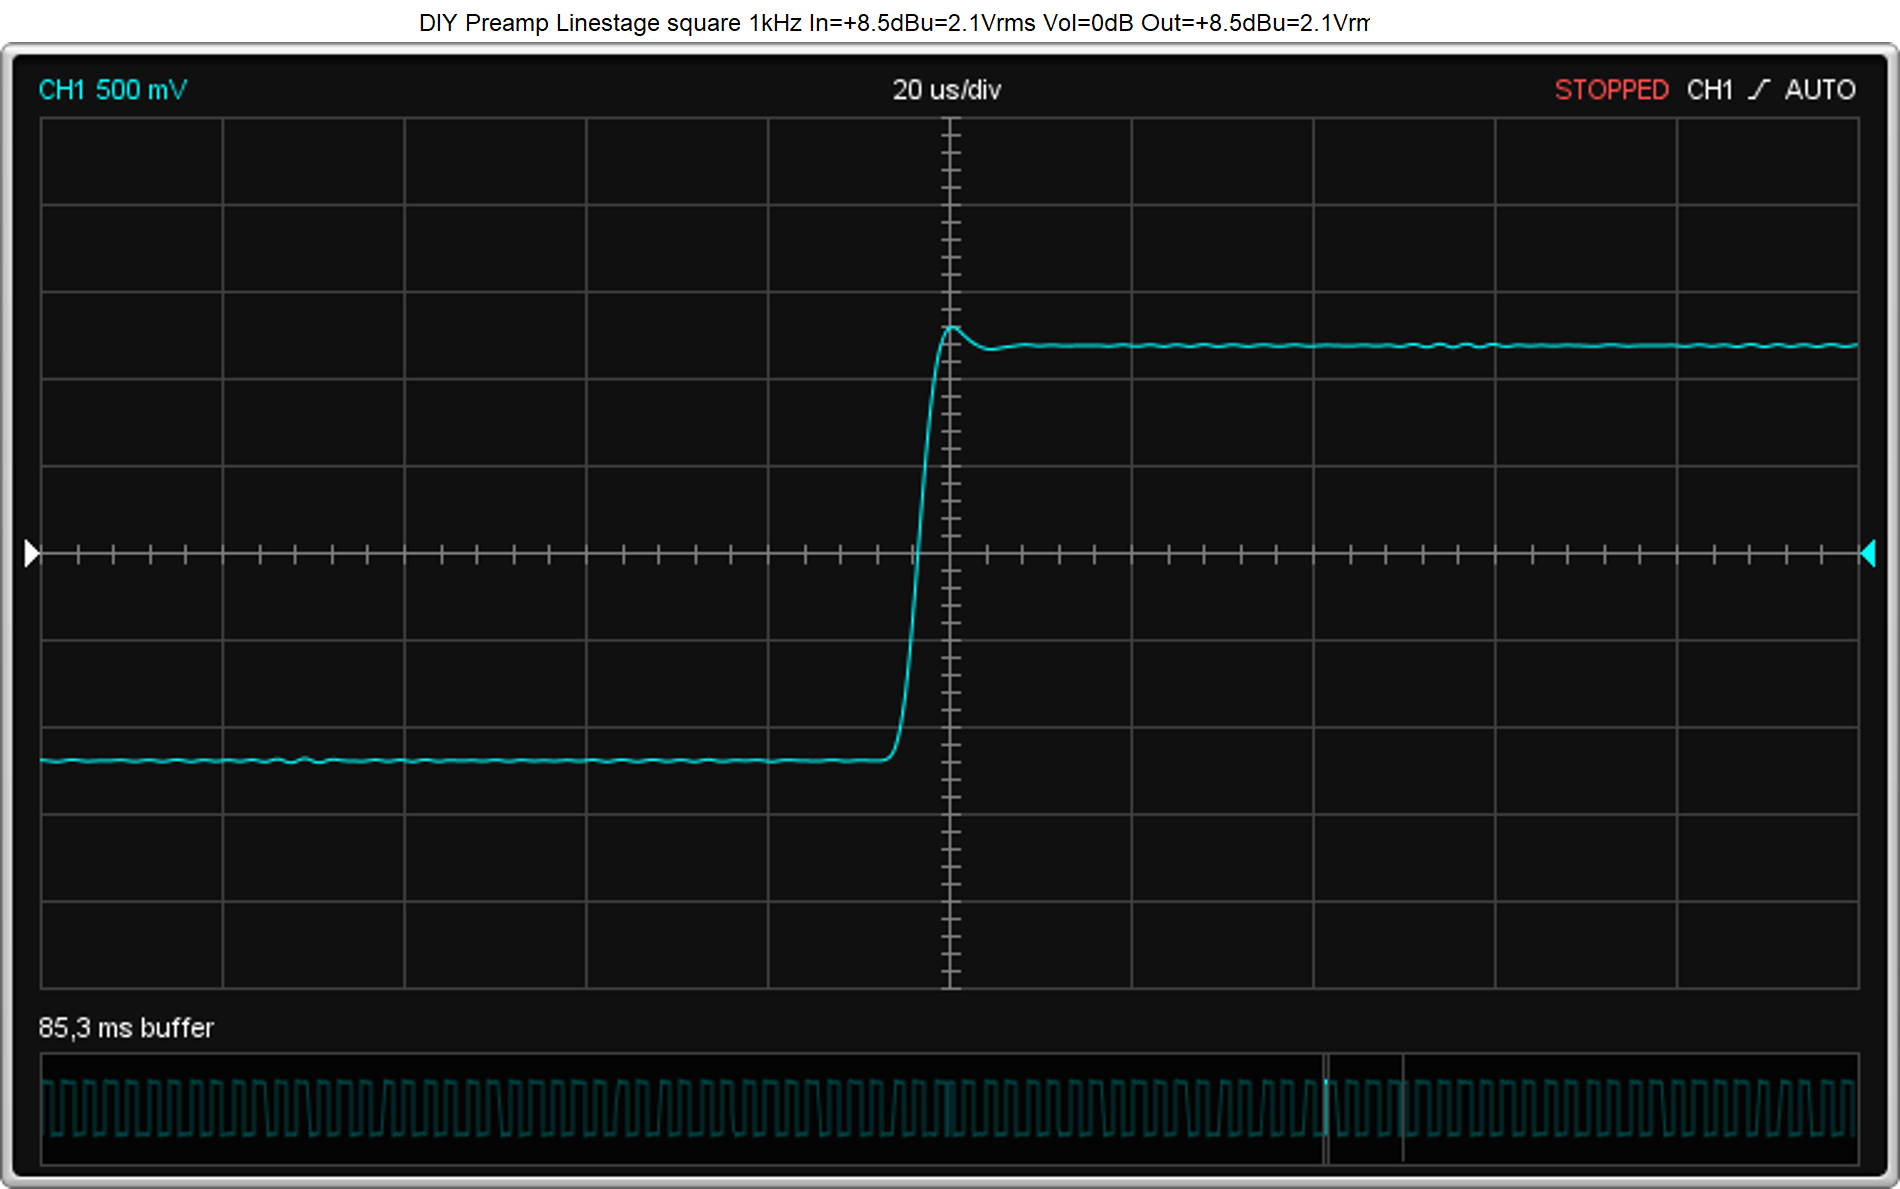 DIY Preamp Linestage square 1kHz In=+8.5dBu=2.1Vrms Vol=0dB Out=+8.5dBu=2.1Vrms zoomed.png